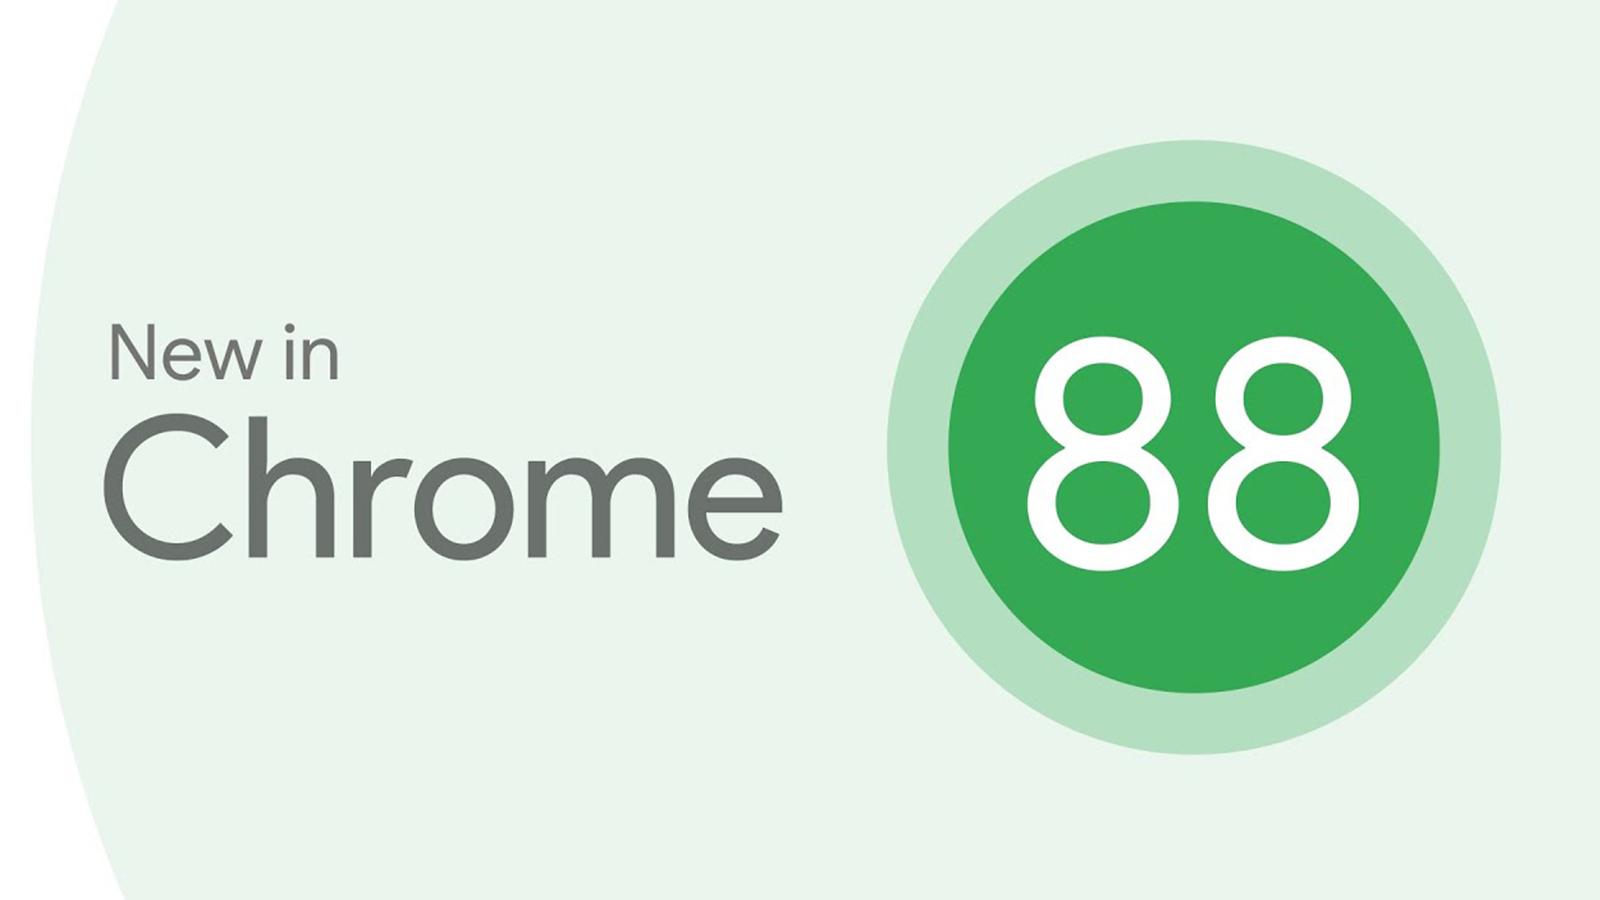 Chrome 88 is rolling out now with a heavy focus on security, web app features, and more